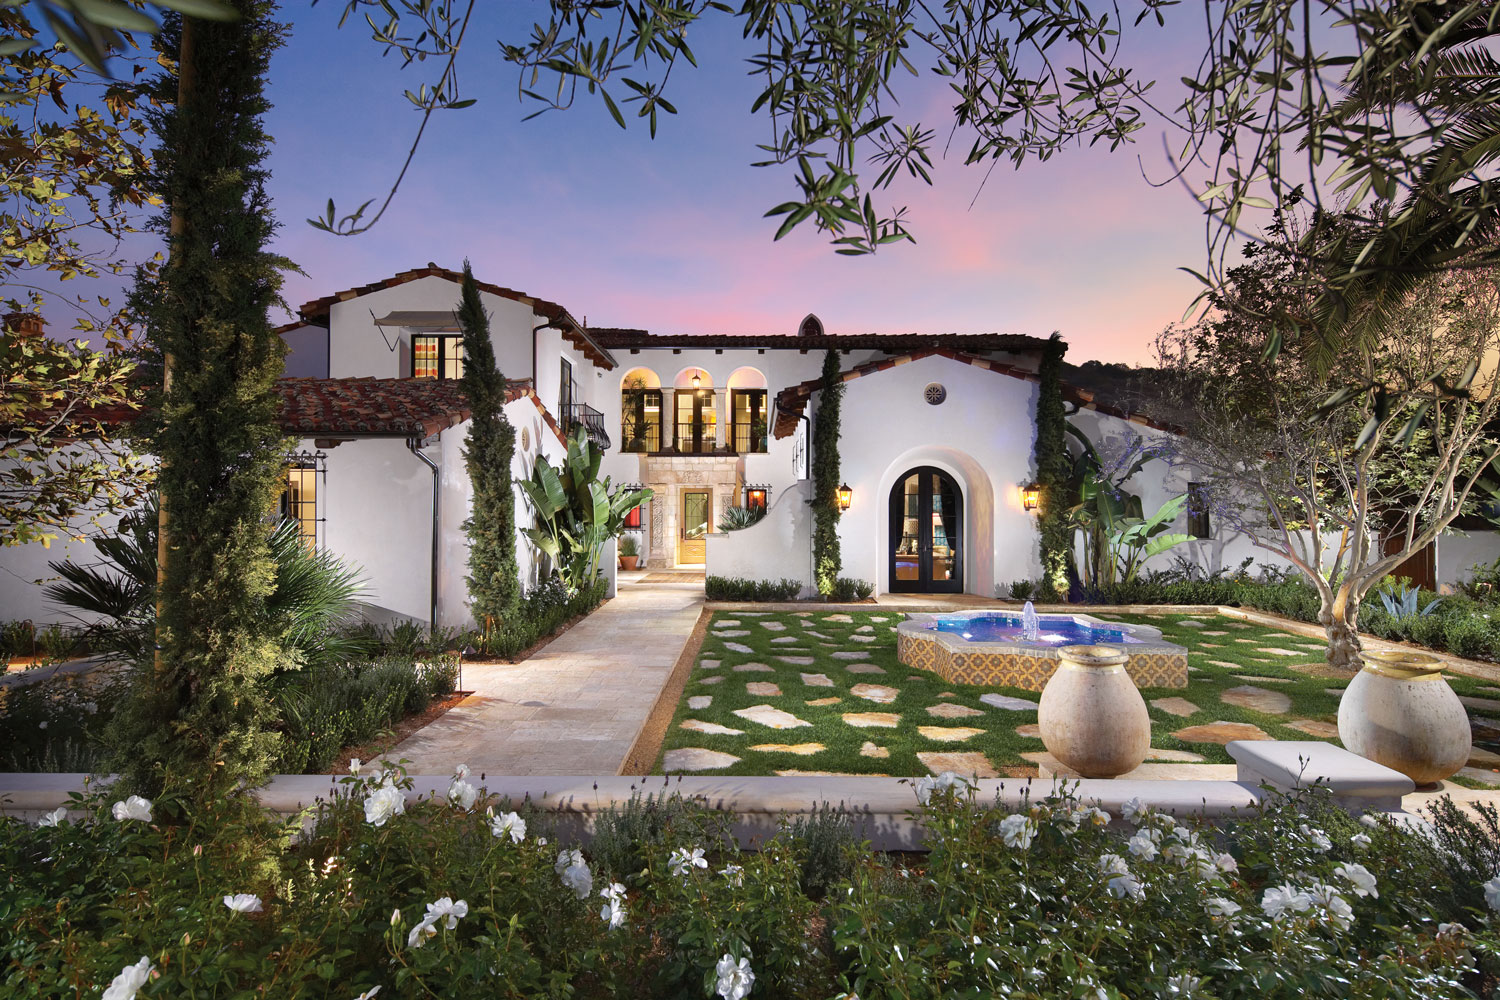 Contemporary-Spanish-Revival-Front-Exterior-Facade-Fountain-Corbin-Reeves.jpg